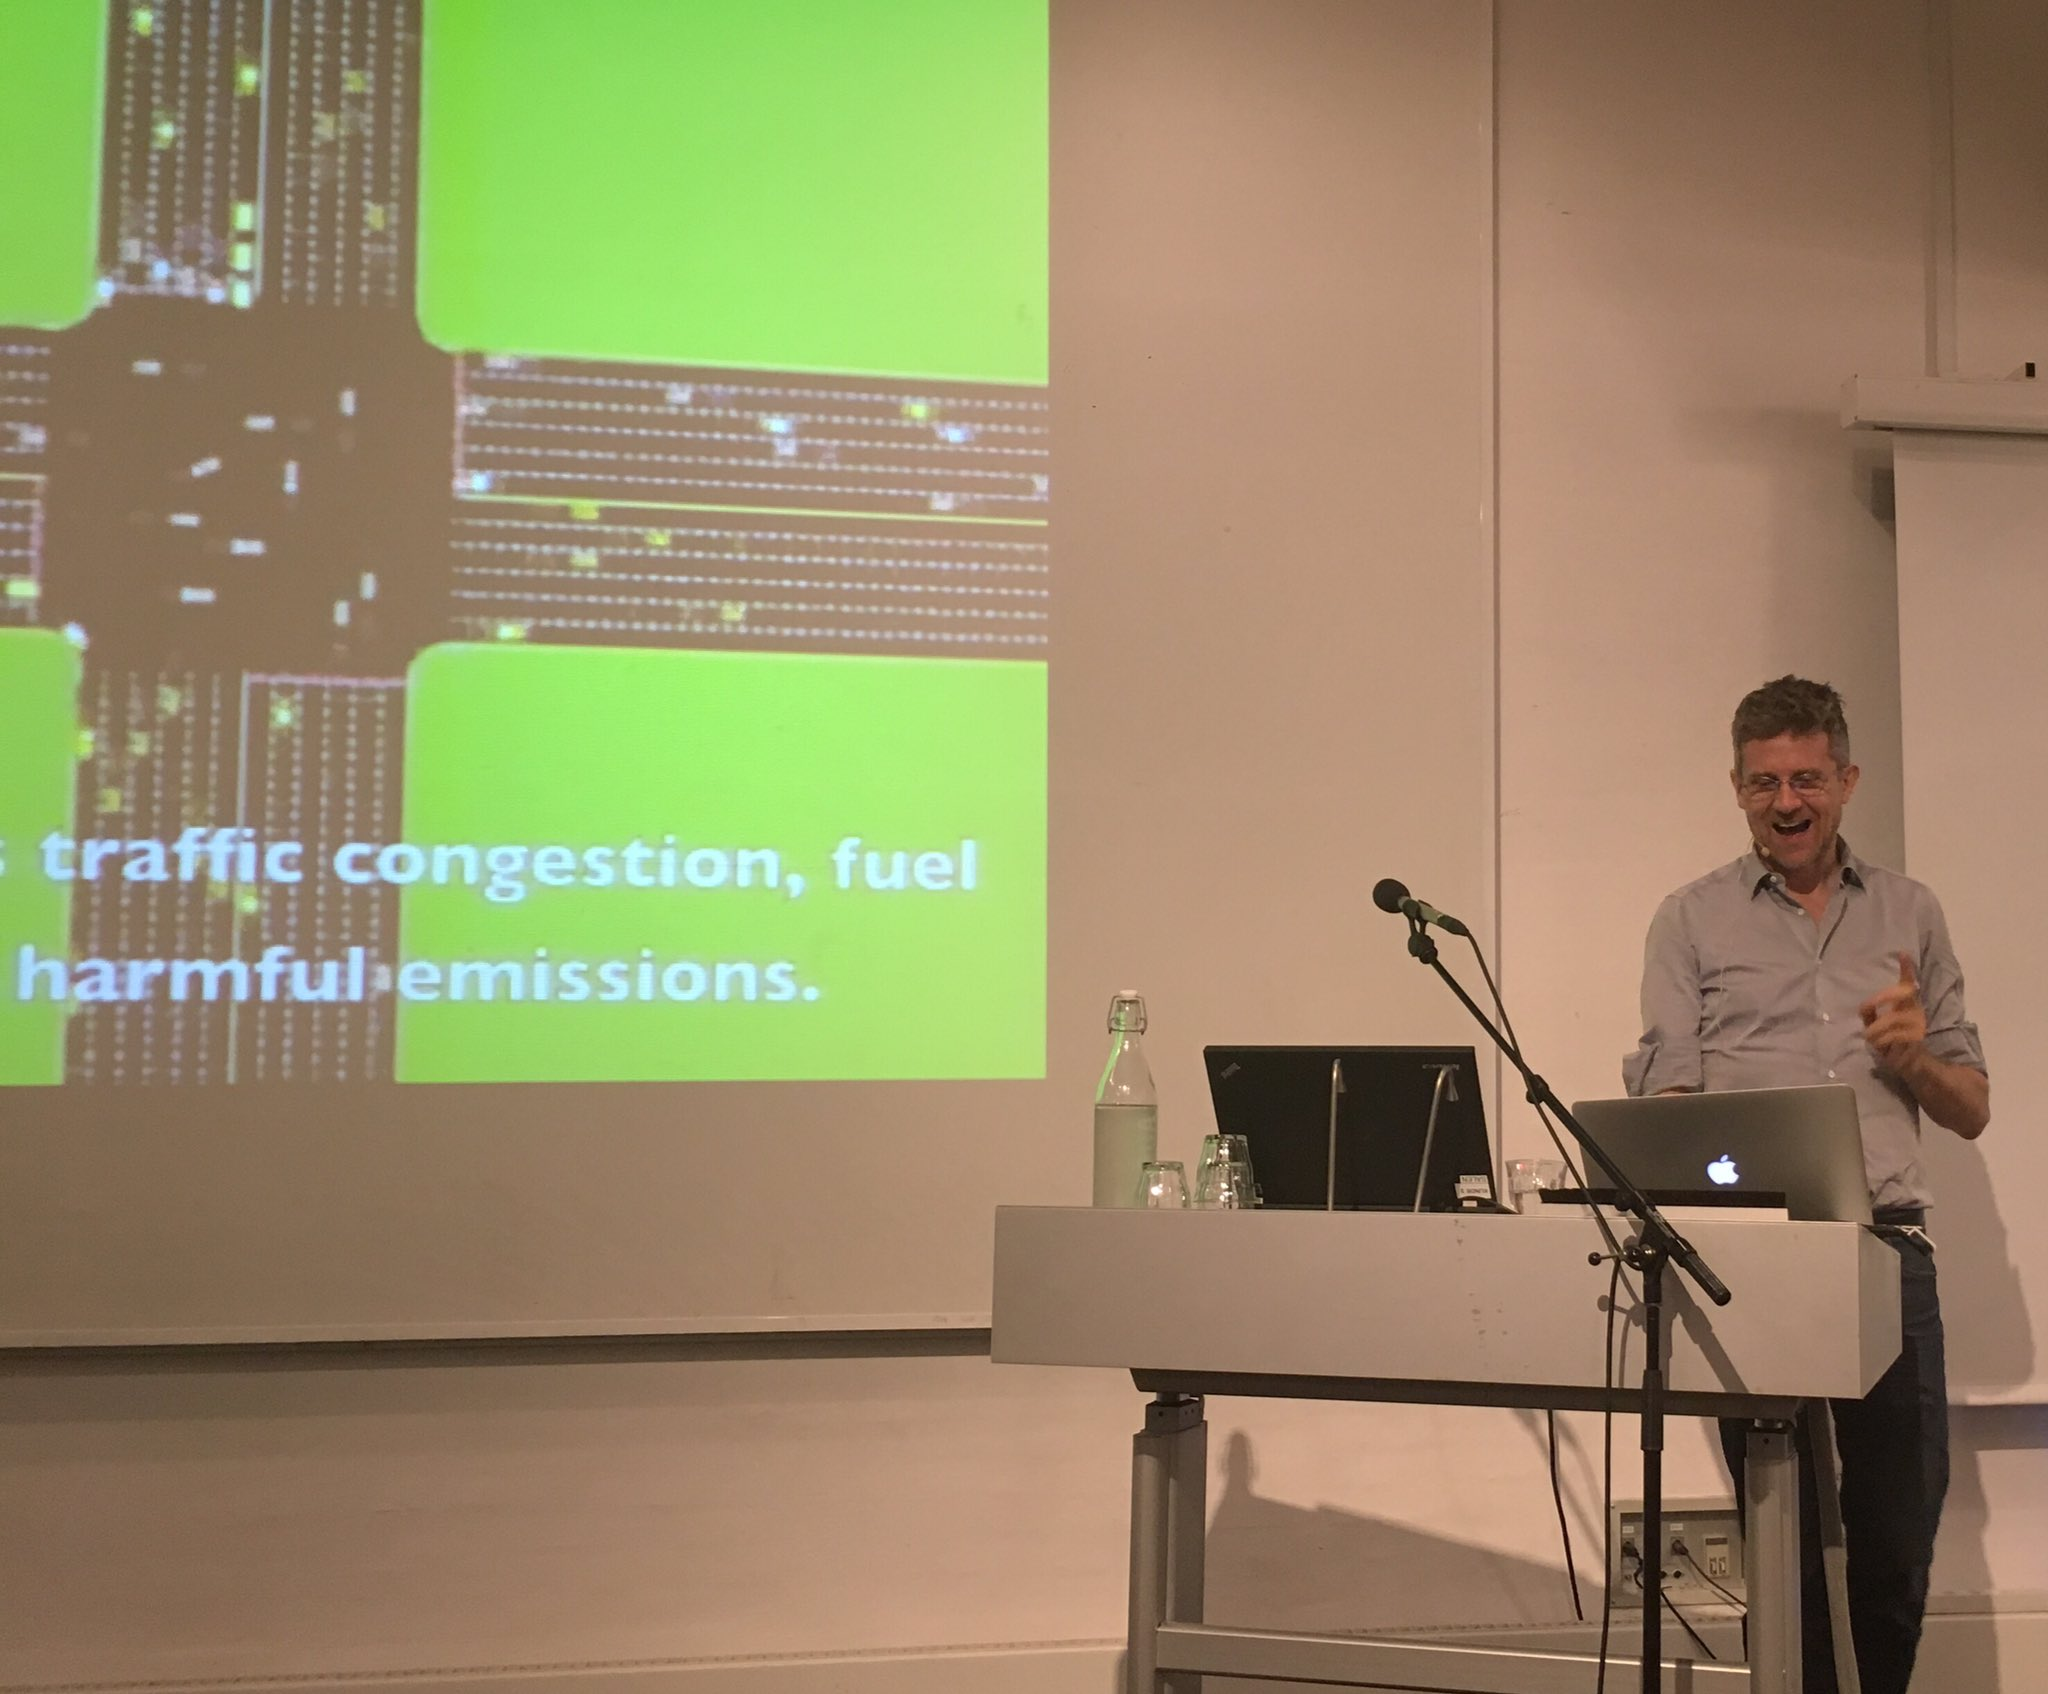 .@crassociati shows us the #traffic intersection of the future. 1st keynote speaker @ our #smartcity conference at @DACdotDK #smartcitizens https://t.co/7cfogi7SK3